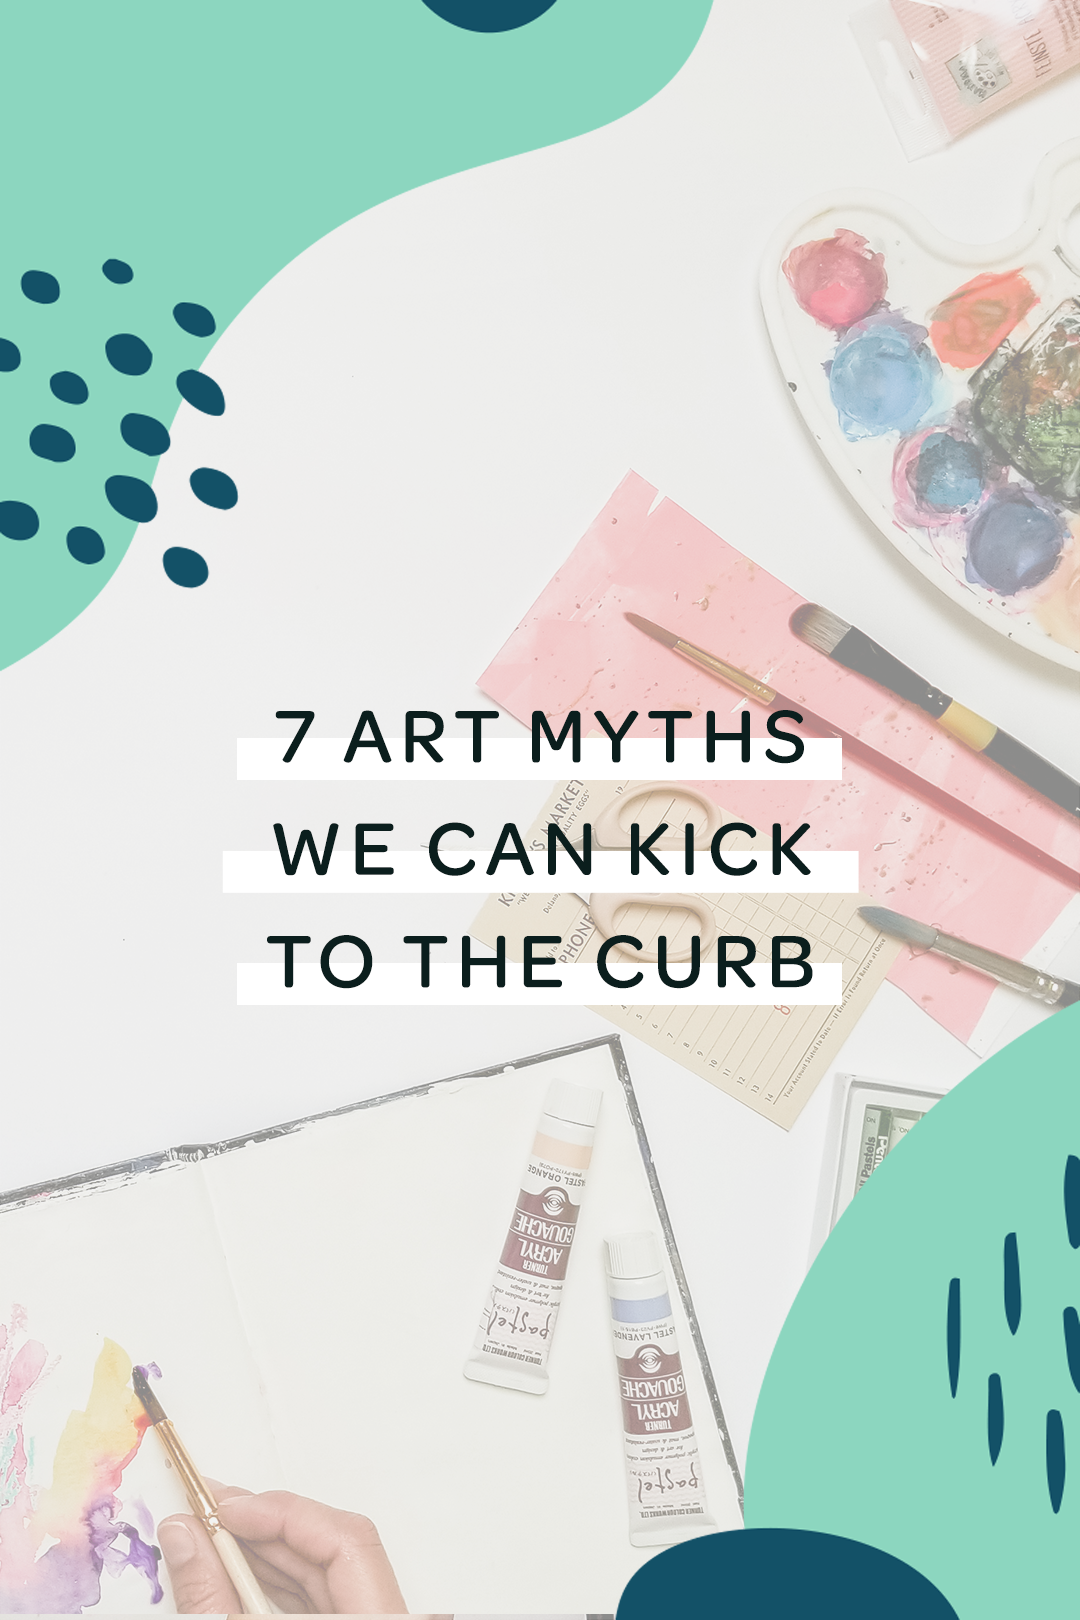 Seven art myths we can kick to the curb